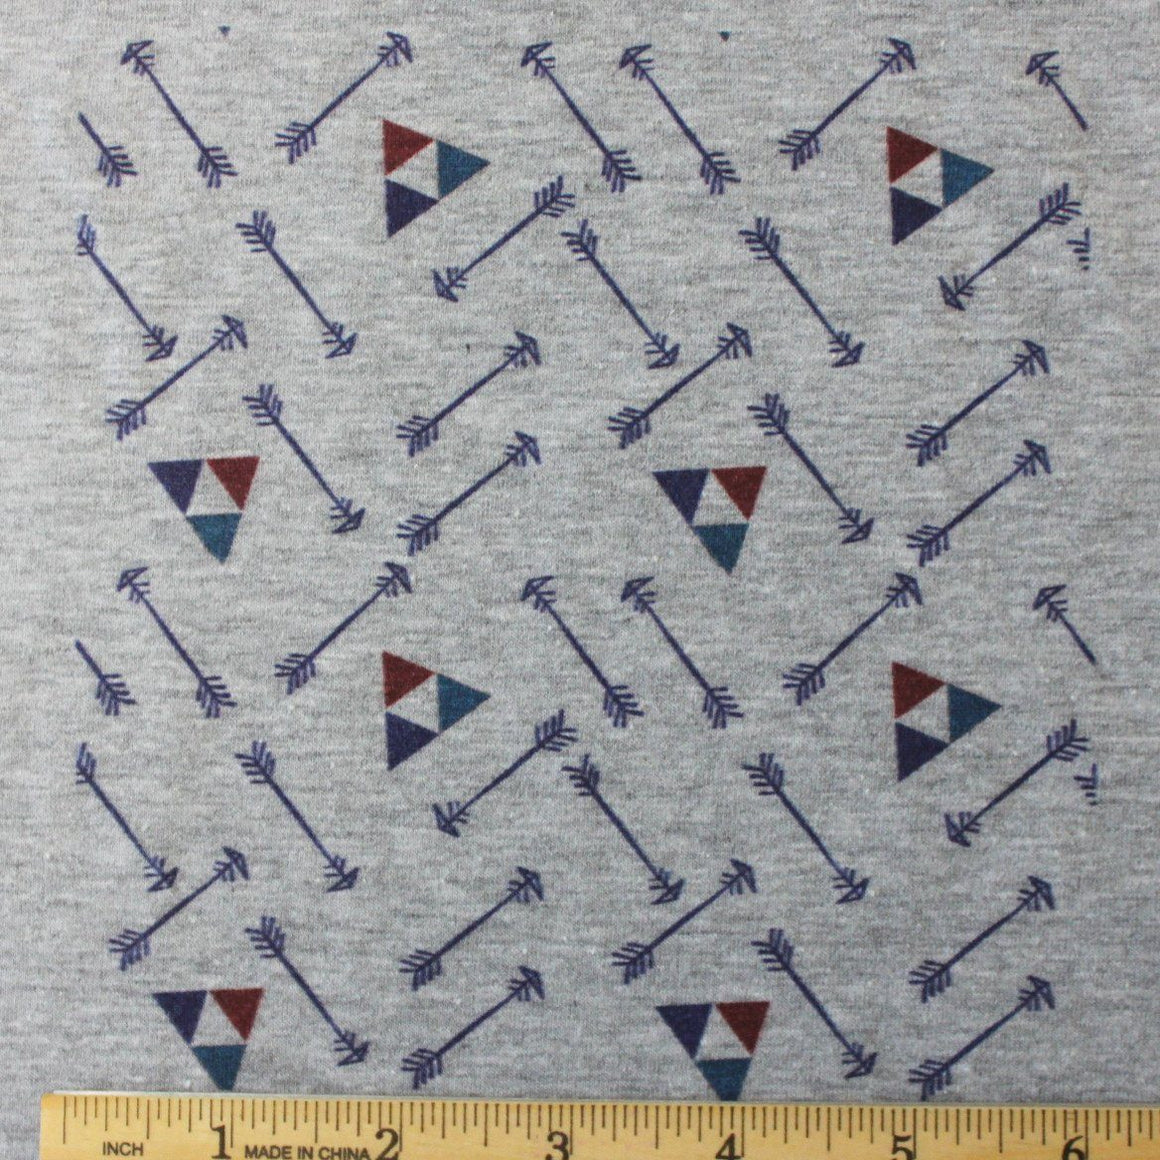 Navy Burgundy and Teal Geometric Arrow Triangle on Grey 4 Way Stretch Jersey Knit Fabric, Retro Greys for Club Fabrics